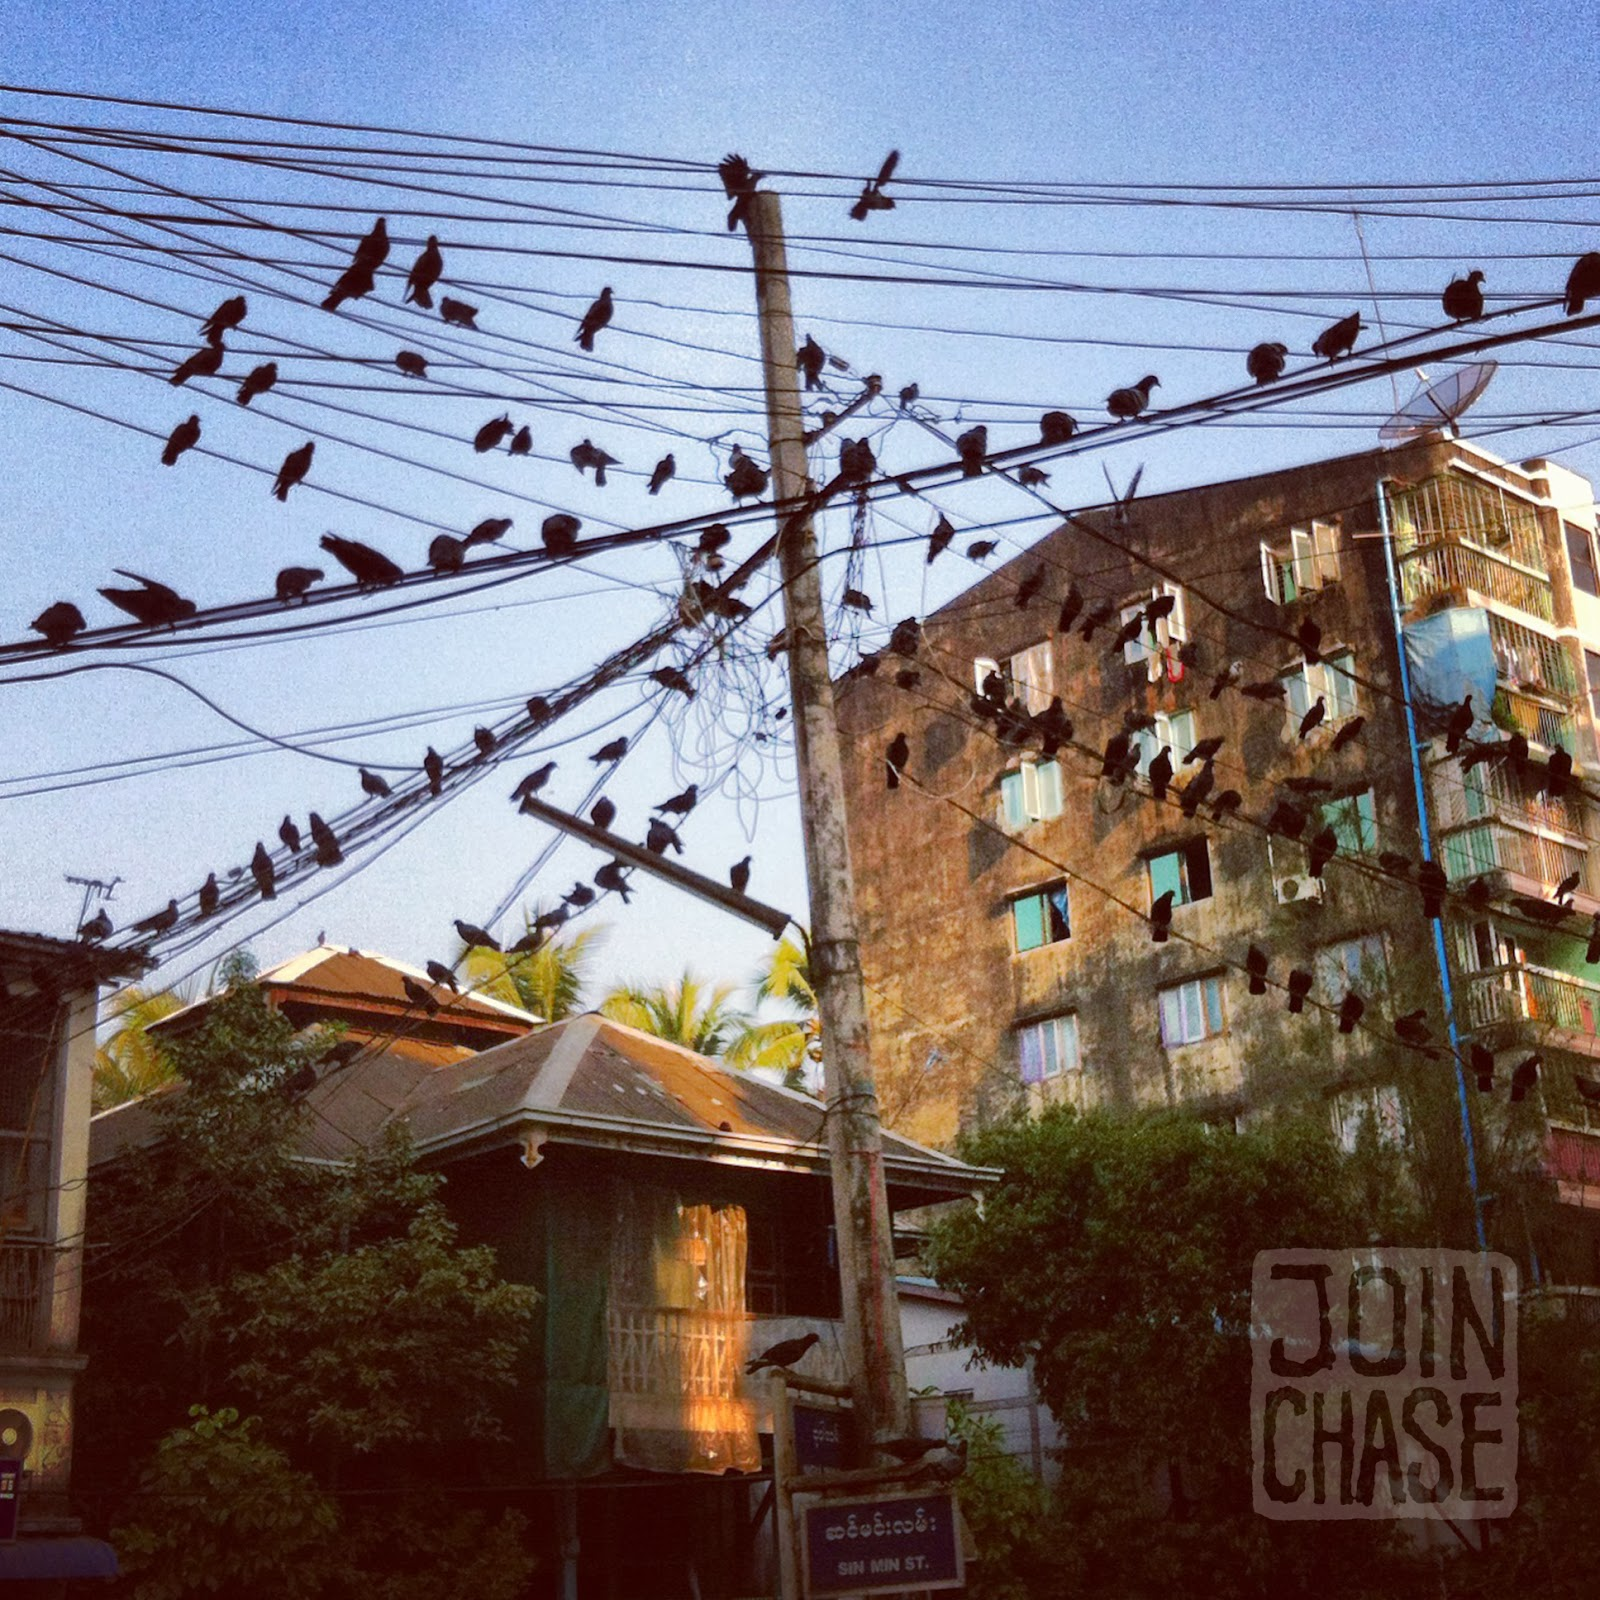 Pigeons on power lines in Ahlone Township, Yangon, Myanmar.